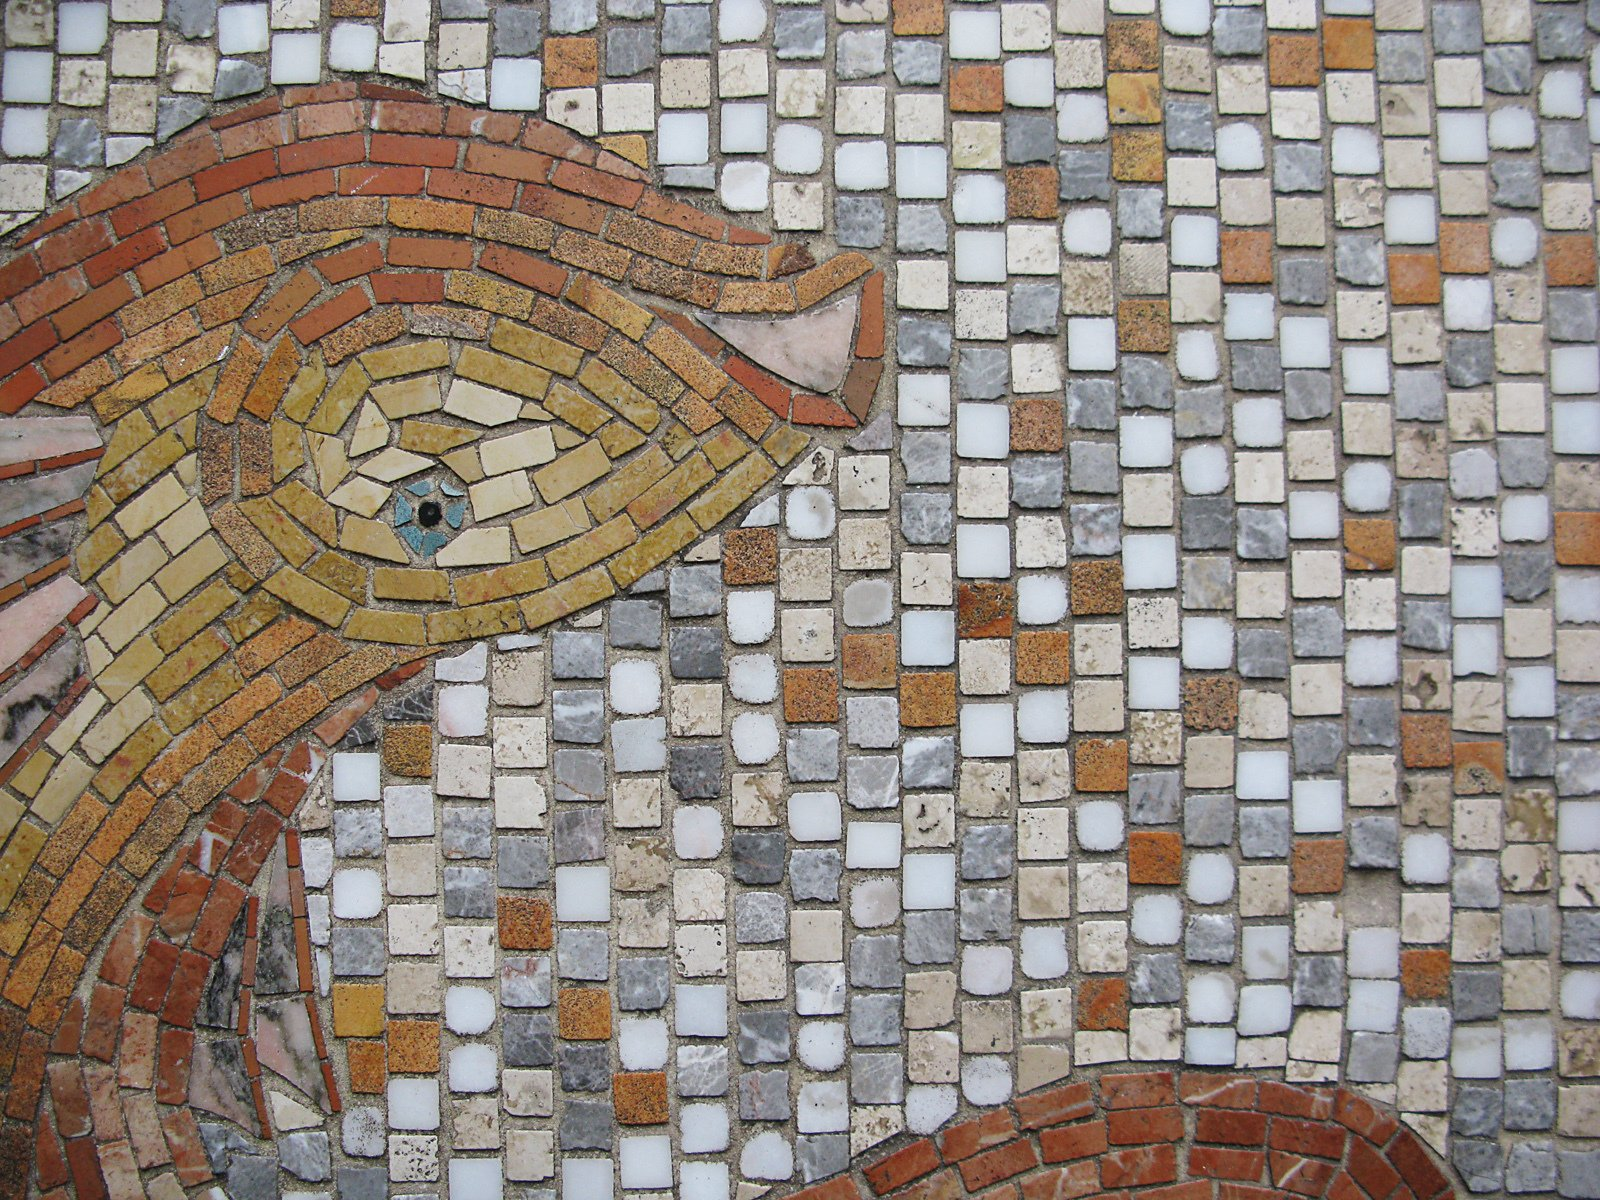 Mosaic tile details.  Photo 20 of 51 in City Modern Home Tours: Brooklyn